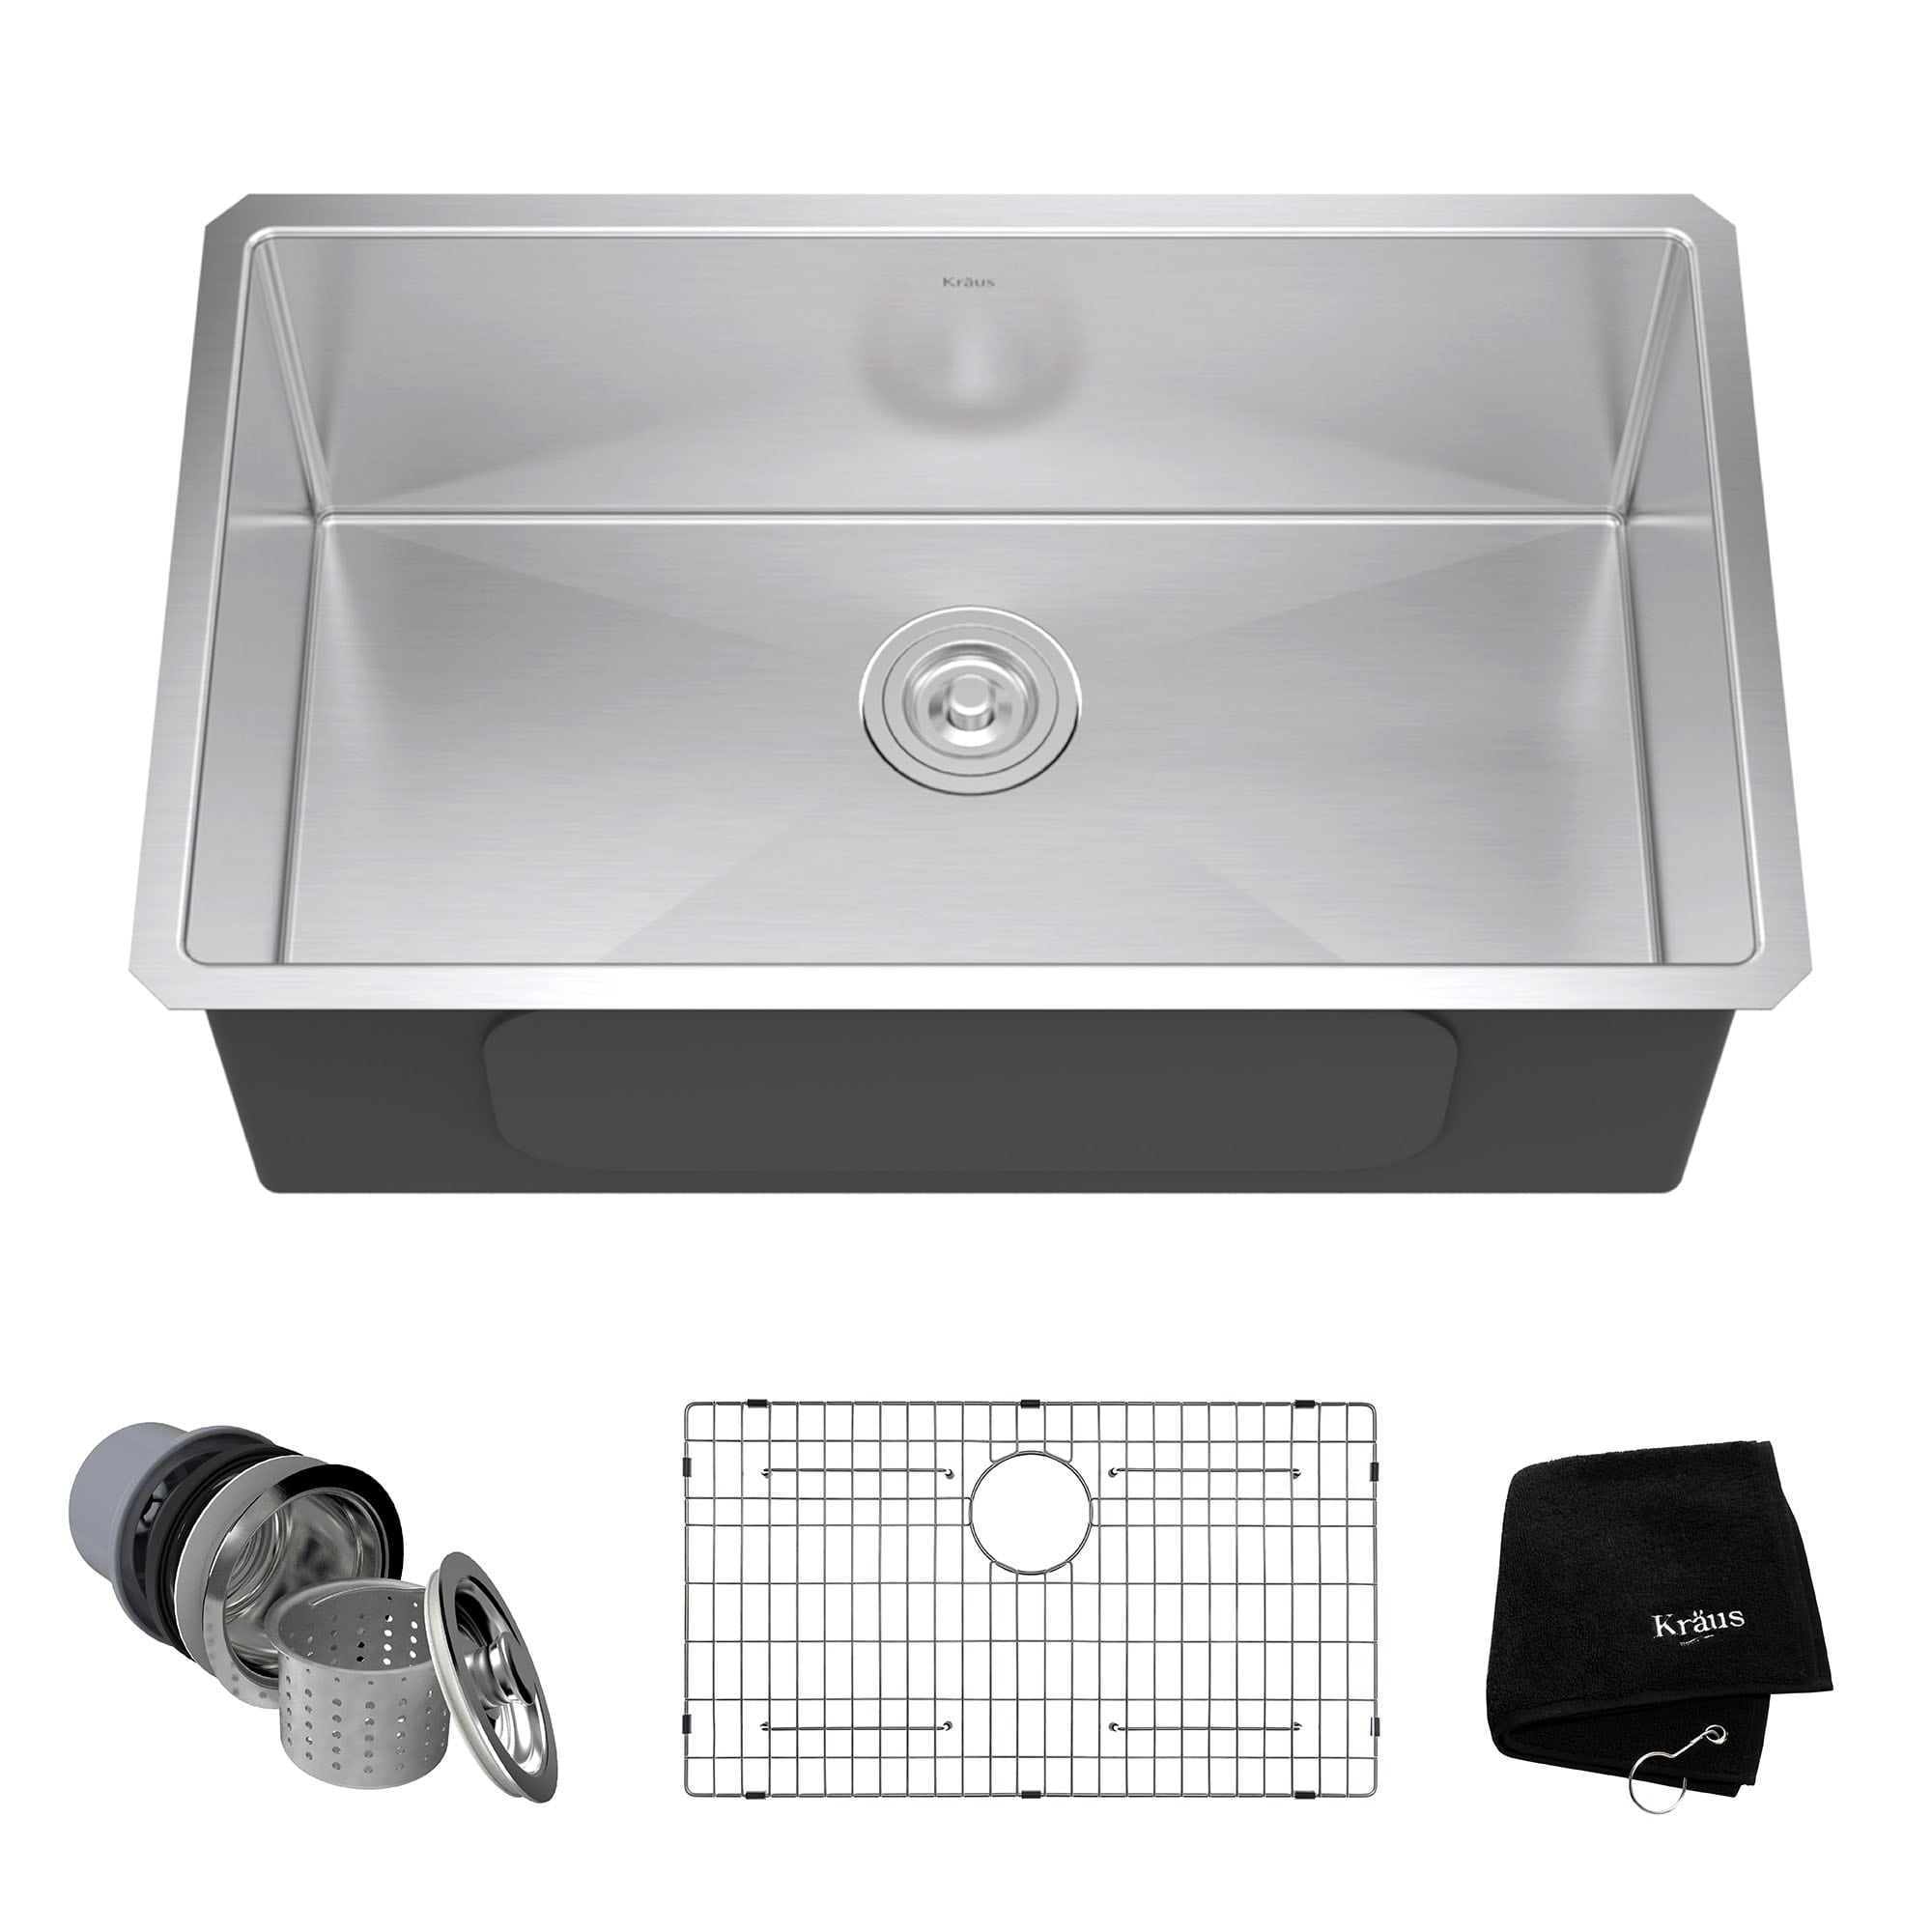 Kitchen Sinks at FaucetDirect